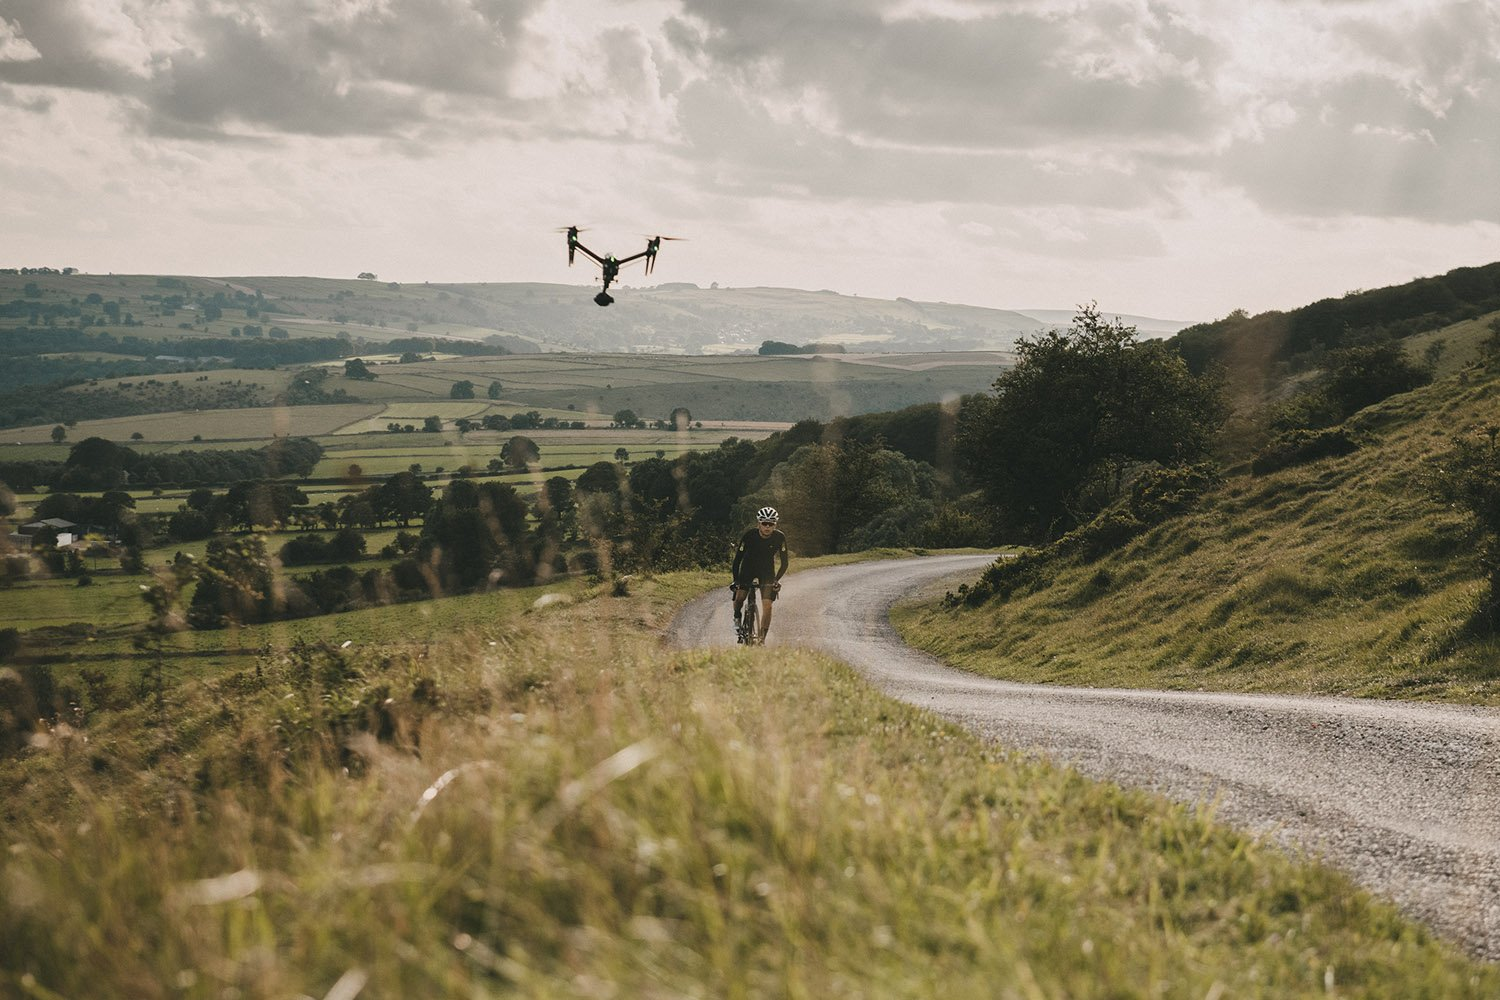 Cyclist riding up hill with drone following